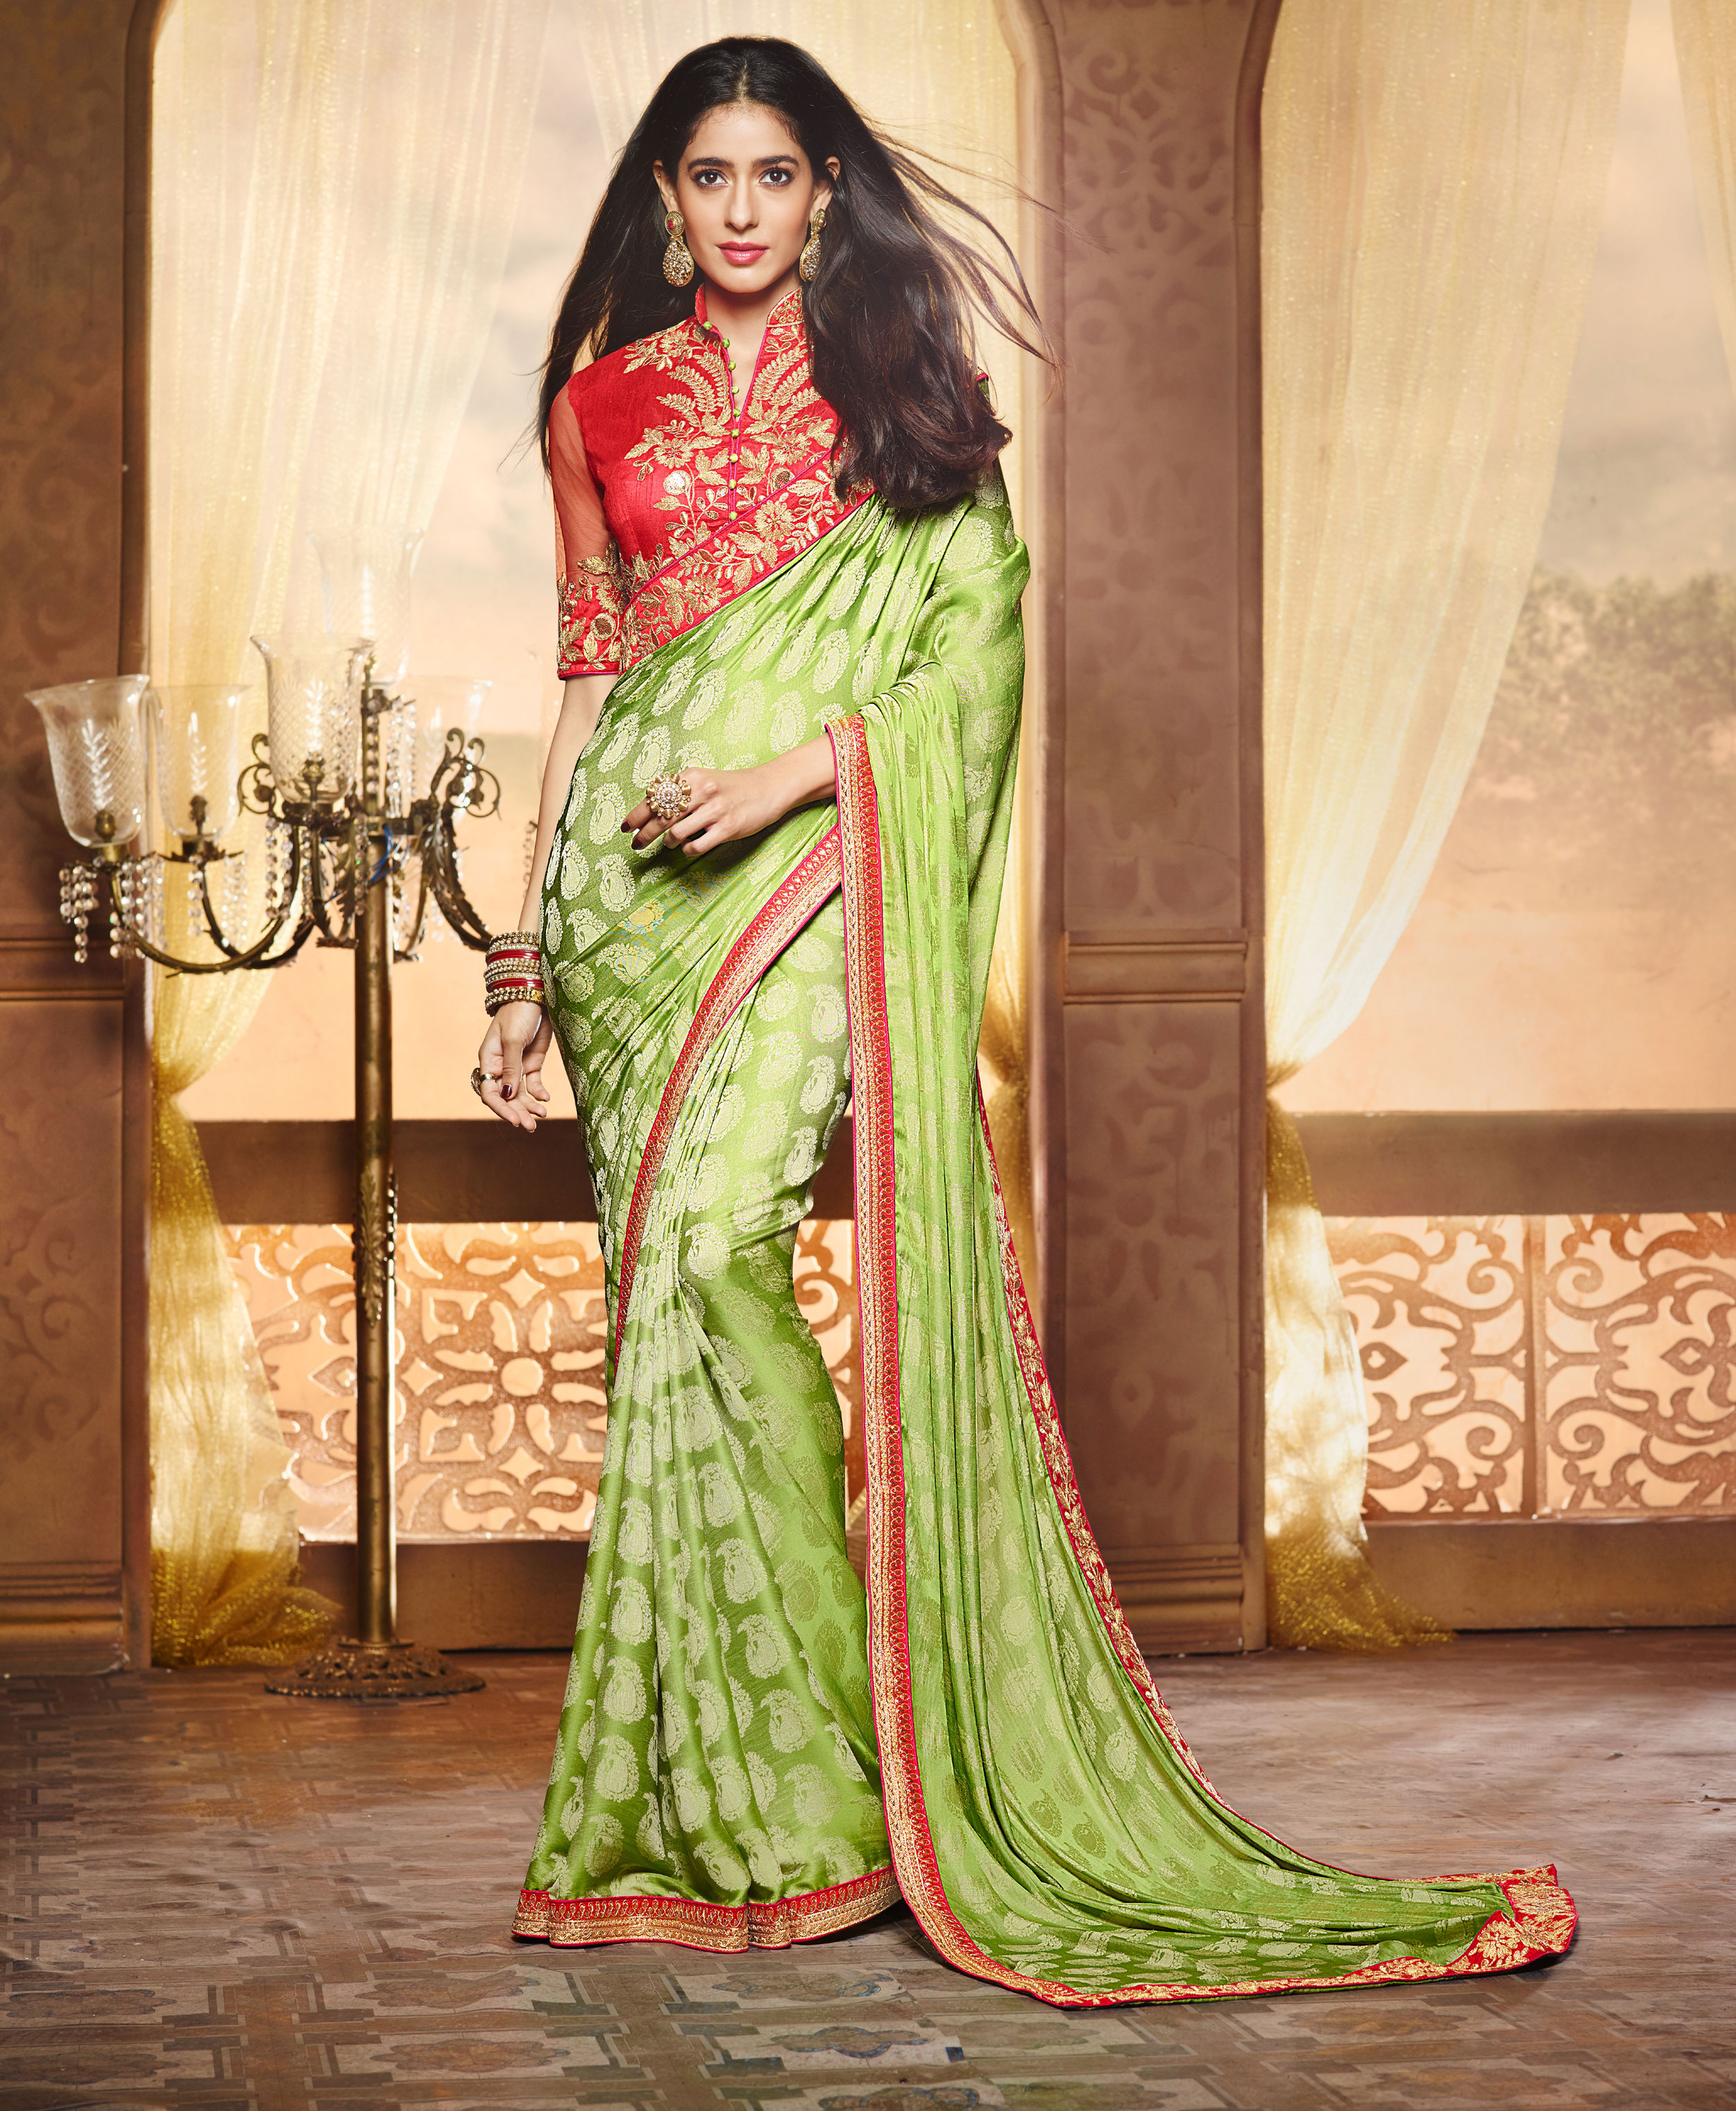 ralsaree Real Saree Women's Green Pure Silk Jacquard Embroidered Saree With Blouse